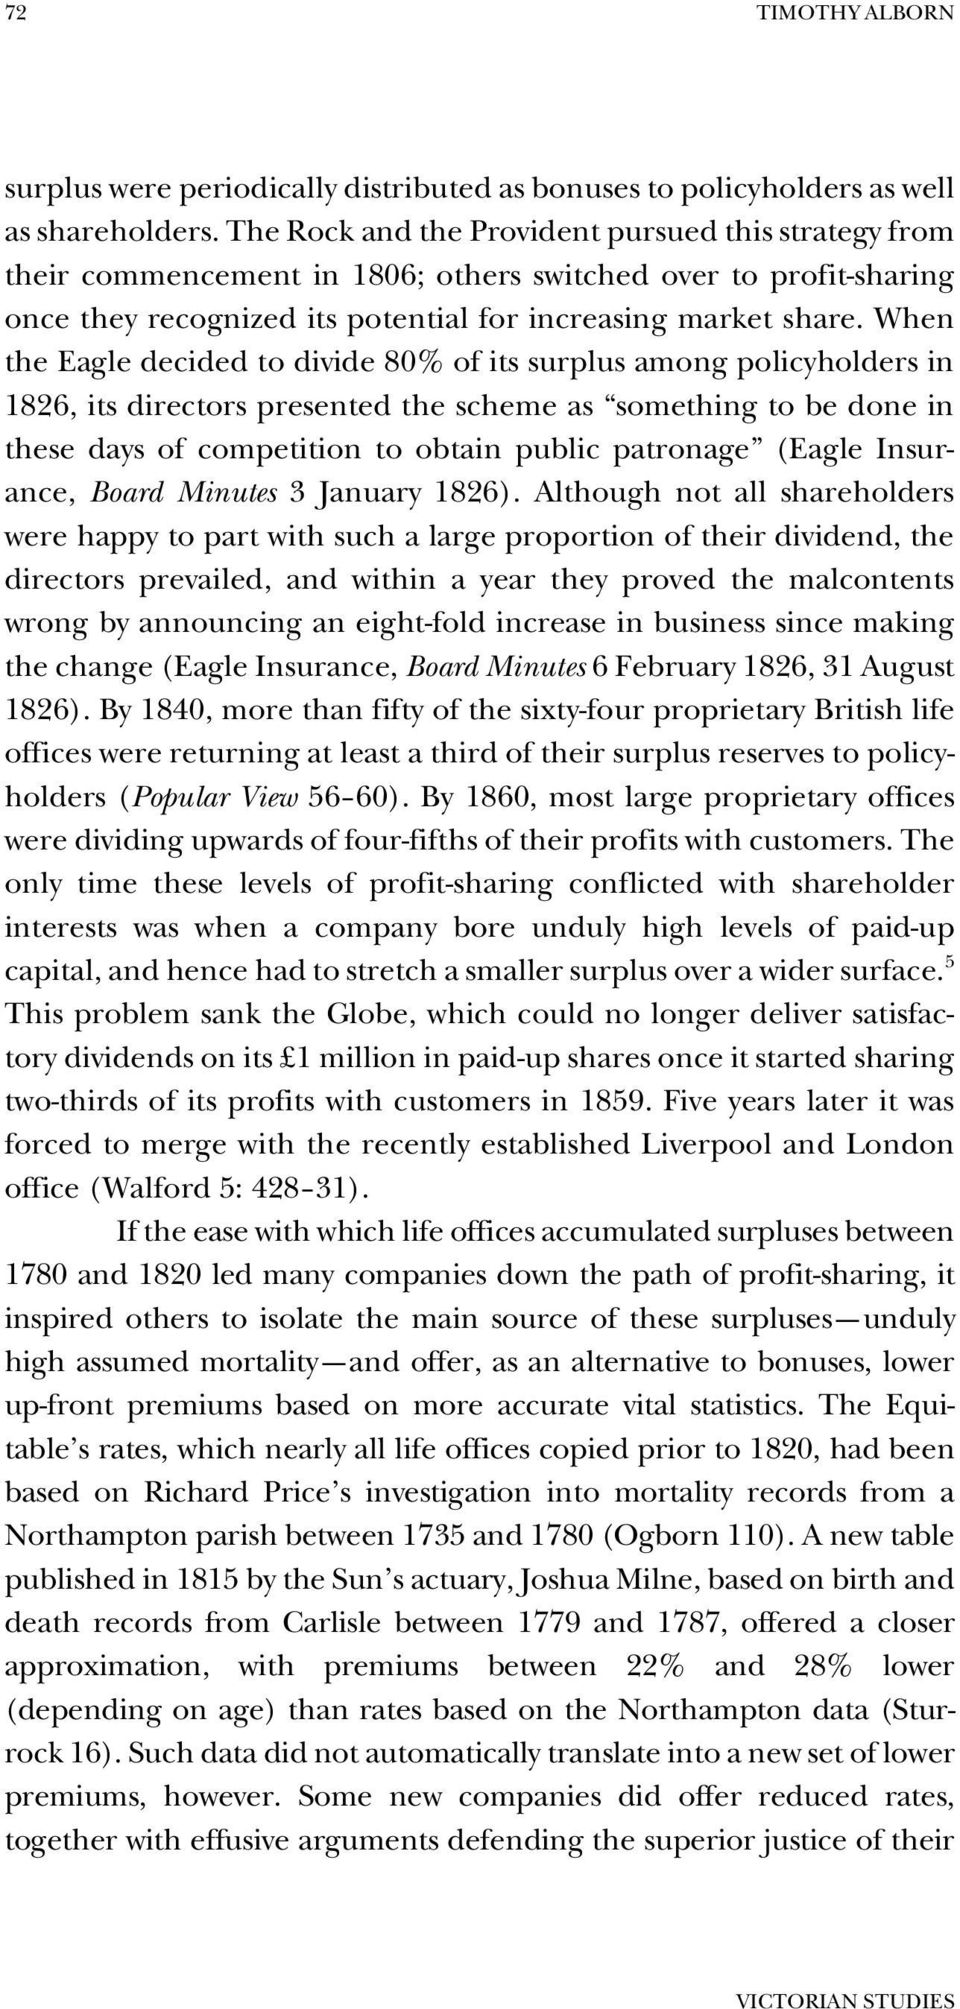 When the Eagle decided to divide 80% of its surplus among policyholders in 1826, its directors presented the scheme as something to be done in these days of competition to obtain public patronage